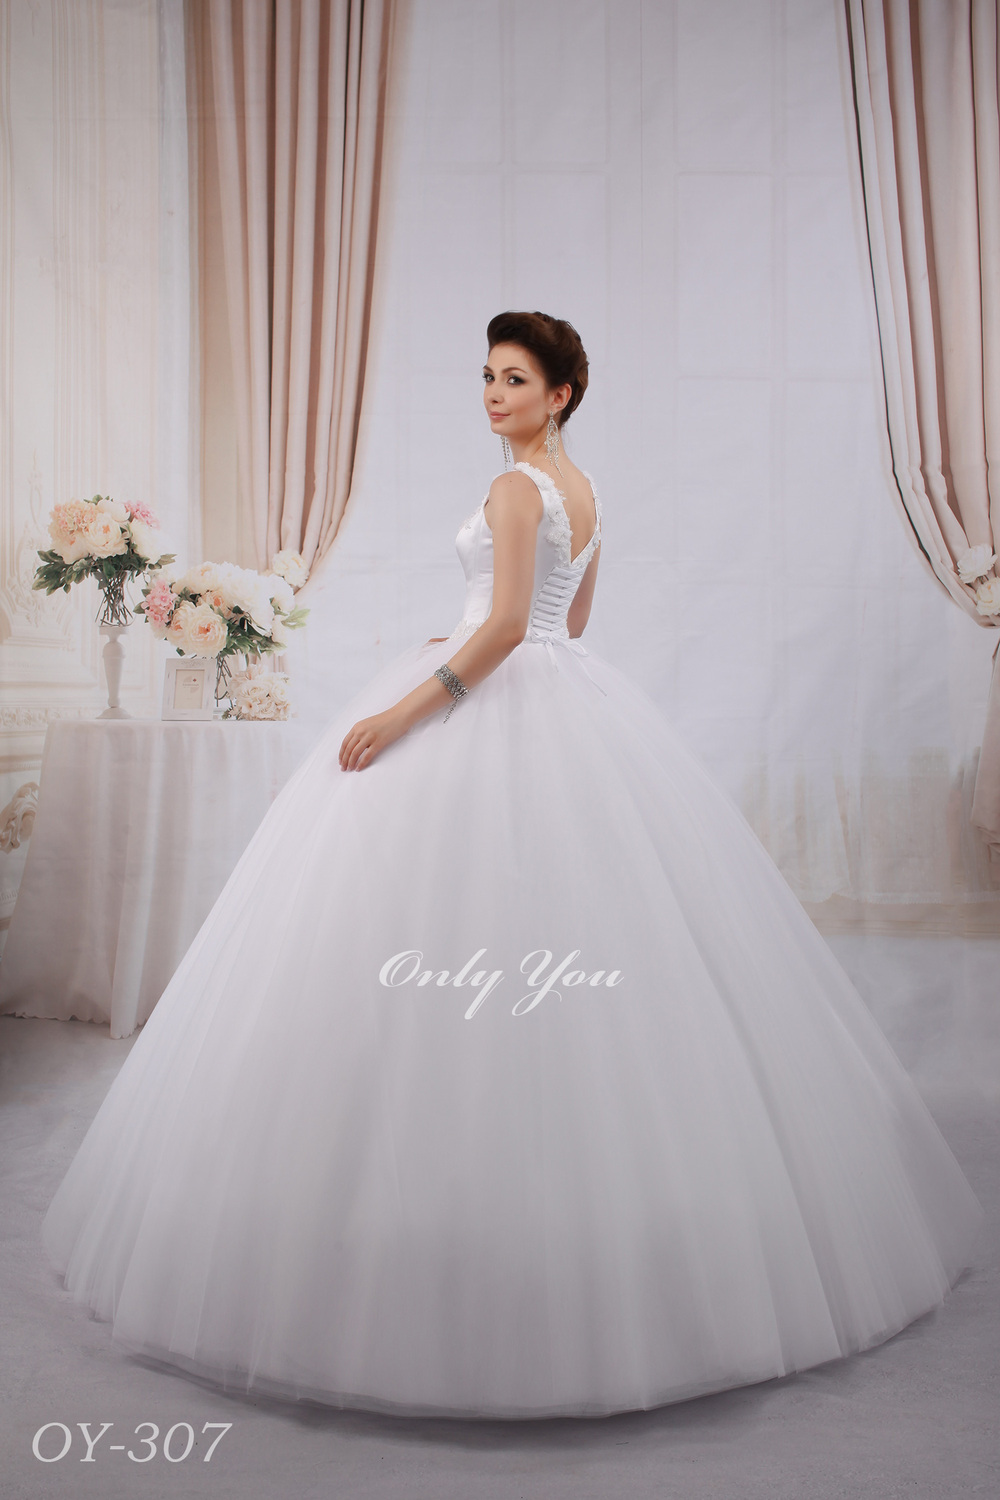 Ball Gown Wedding Dress Material : Fabric flowers buy wedding bridal gown ball dress tulle